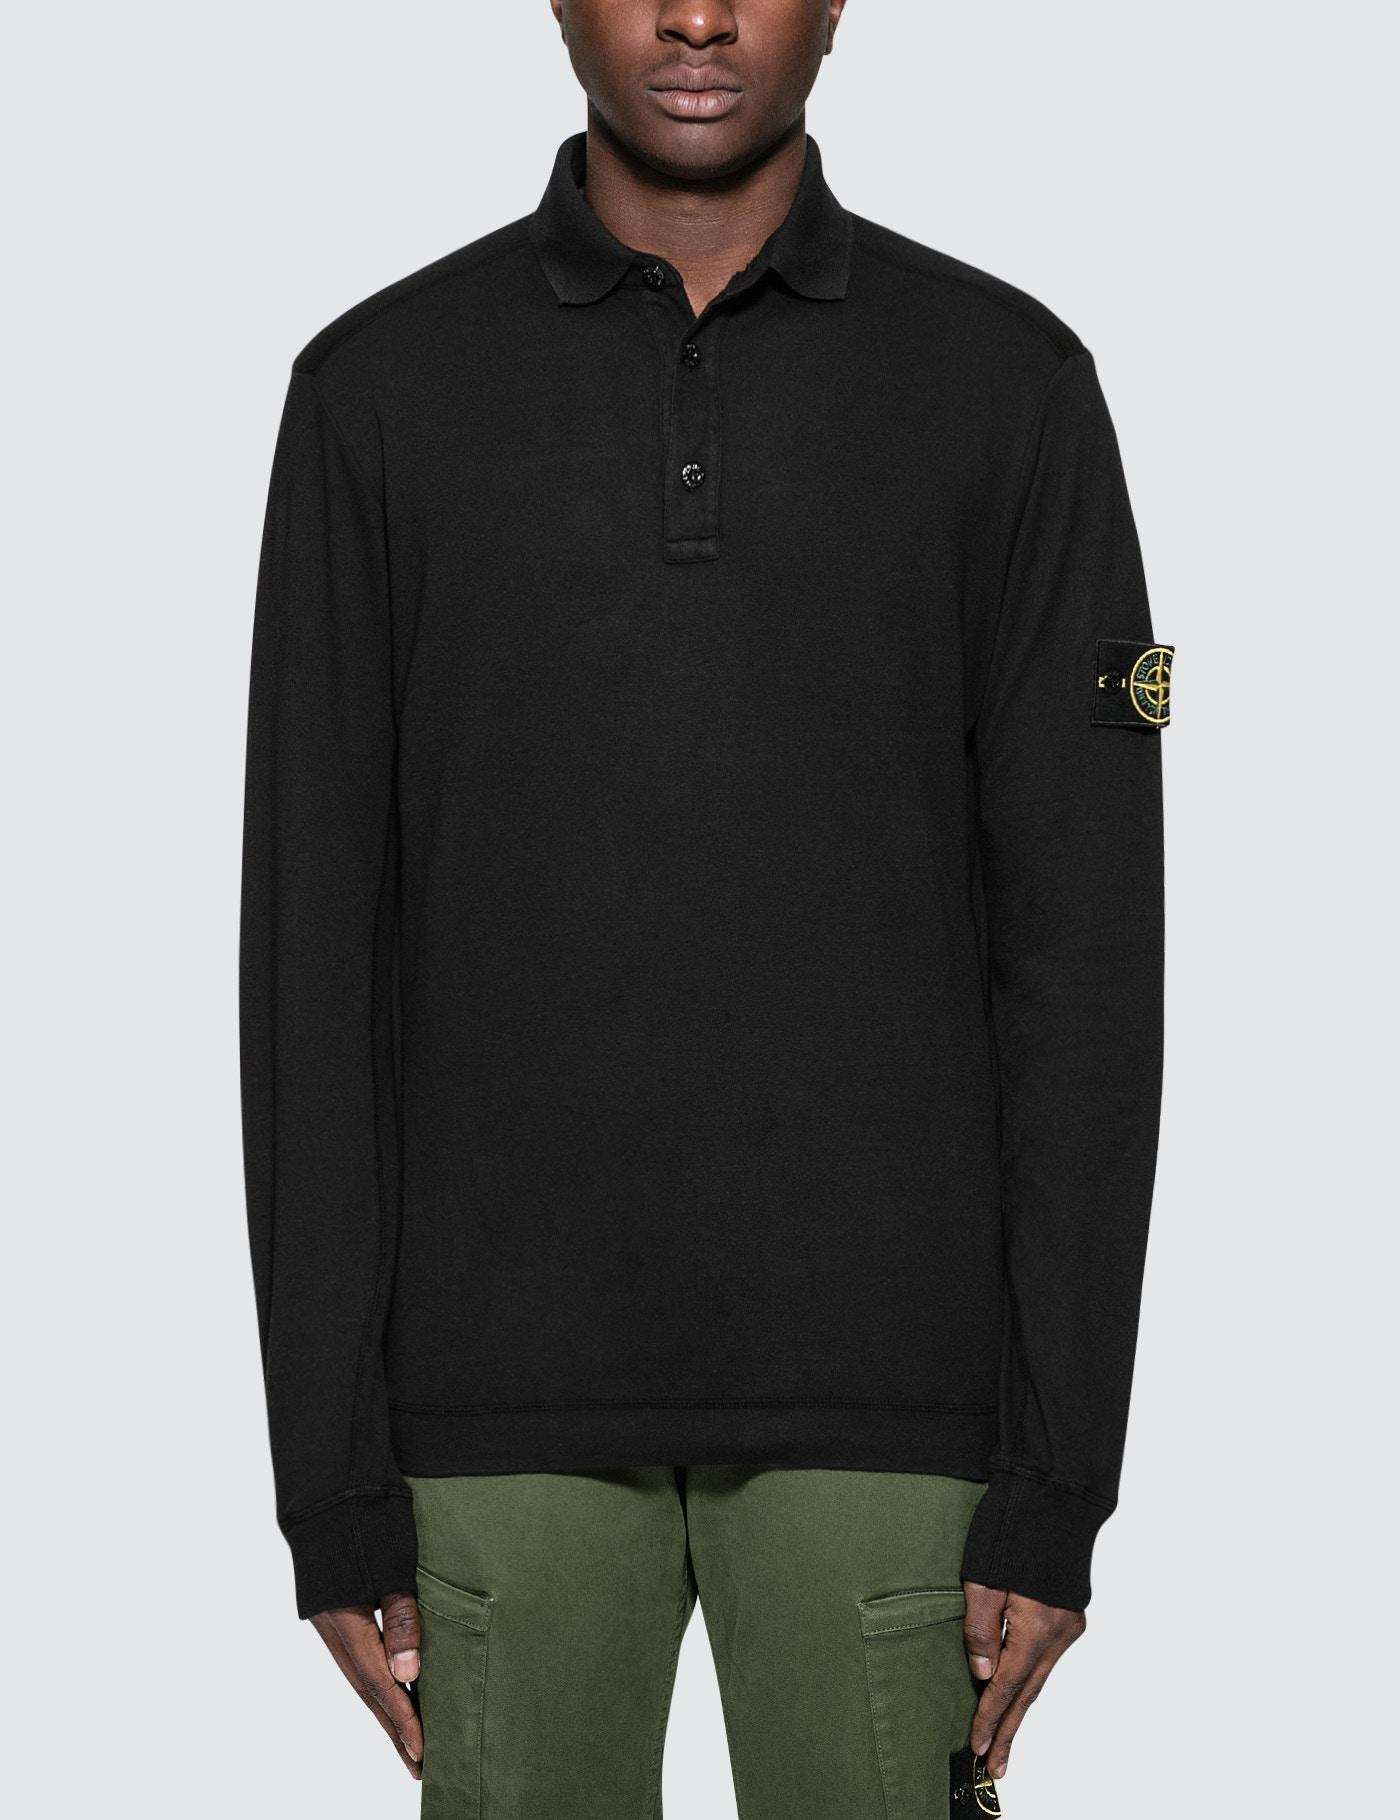 lyst stone island l s polo shirt in black for men. Black Bedroom Furniture Sets. Home Design Ideas